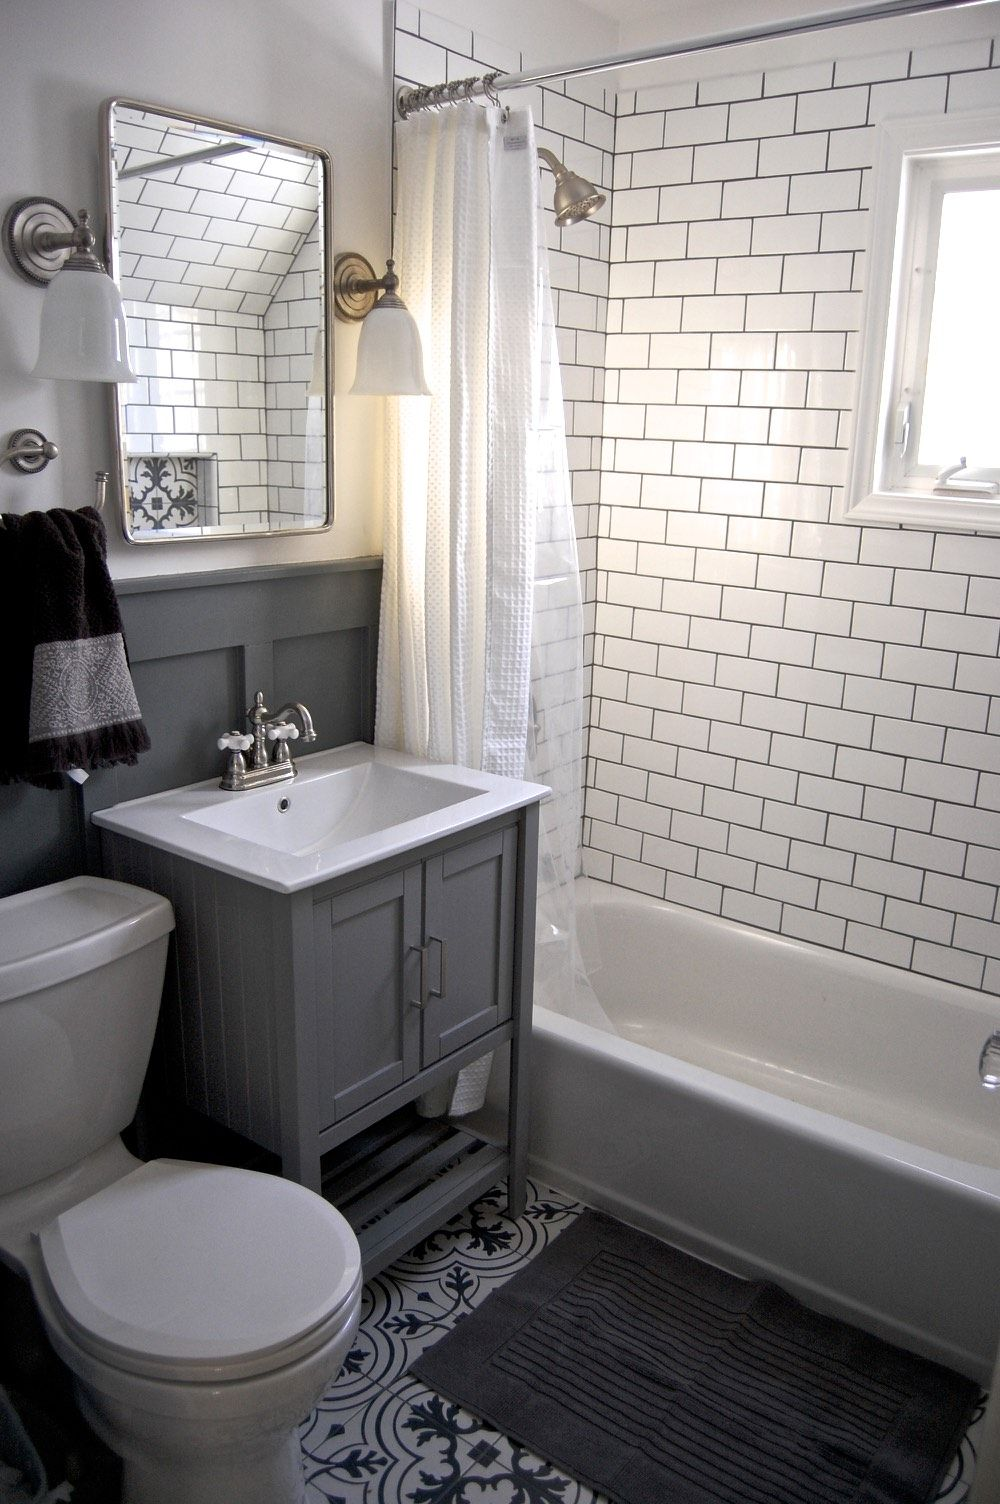 Small Decorative Tiles Small Grey And White Bathroom Renovation Updatesubway Tile Grey